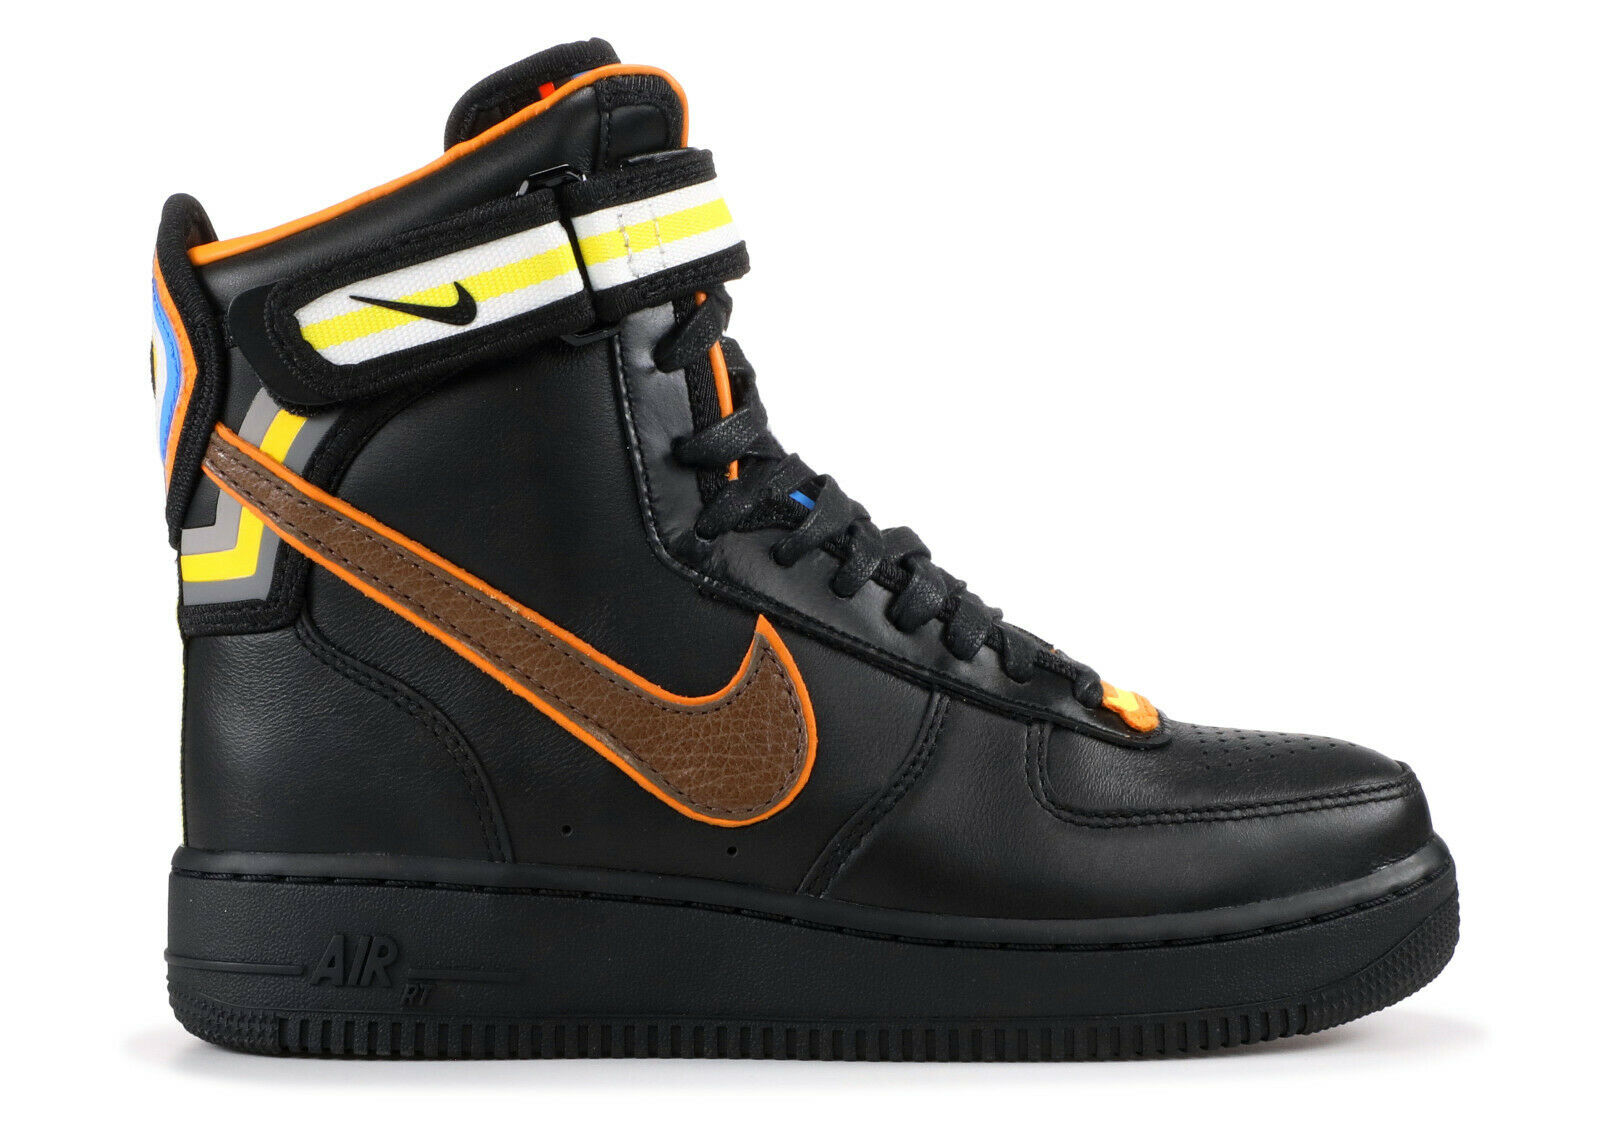 Men's Brand New Air Force One HI SP TISCI Athletic Fashion Sneakers [669919 029]